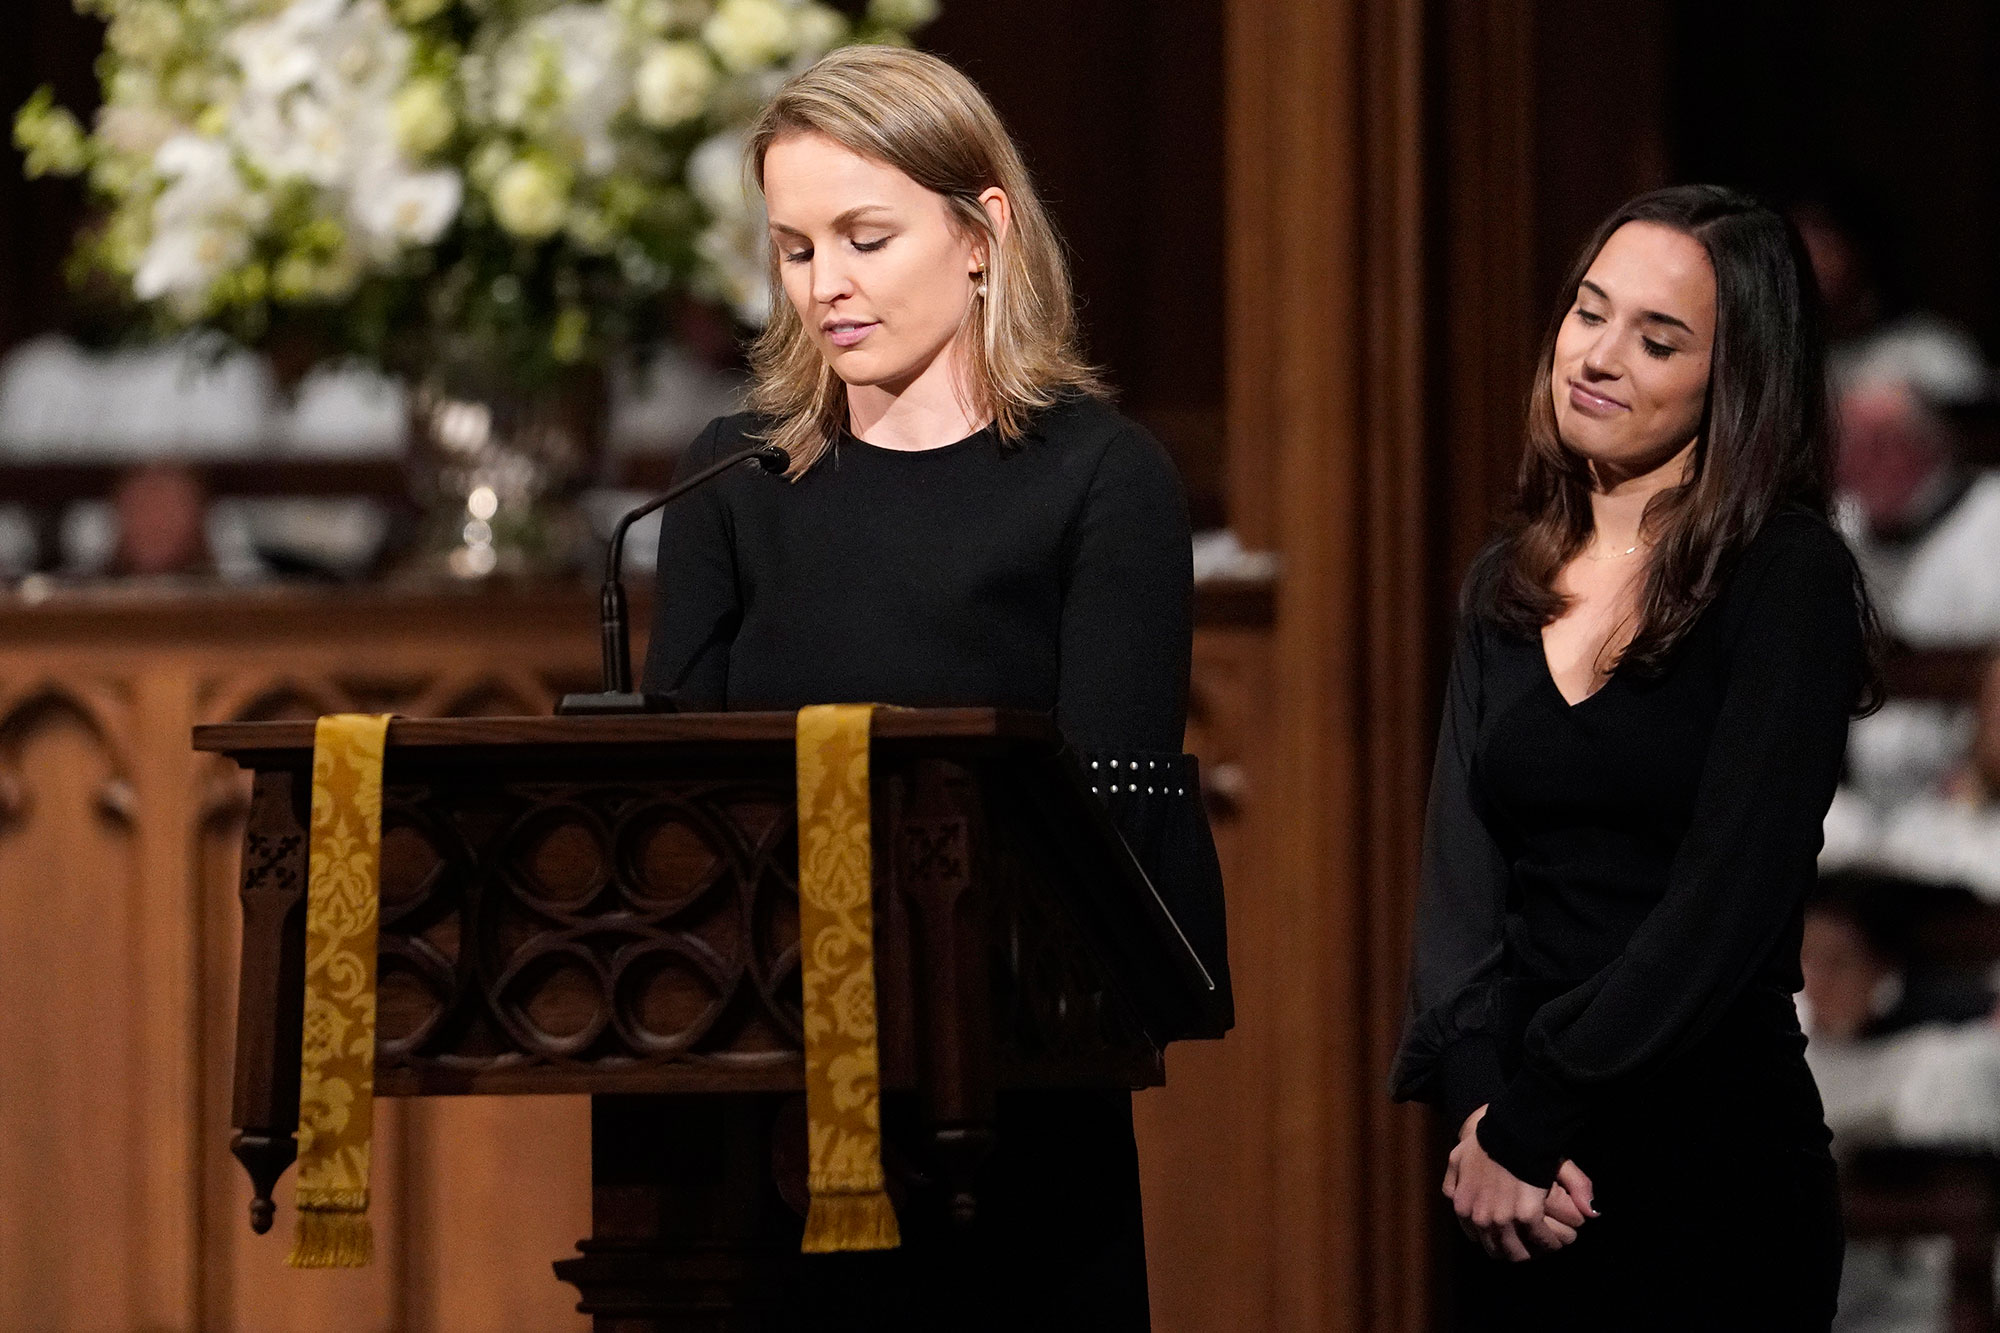 "<div class=""meta image-caption""><div class=""origin-logo origin-image none""><span>none</span></div><span class=""caption-text"">Granddaughters Nancy Ellis LeBlond Sosa, left, and Georgia Grace Koch read scripture during a funeral service for former President George H.W. Bush. (David J. Phillip, Pool/AP Photo)</span></div>"